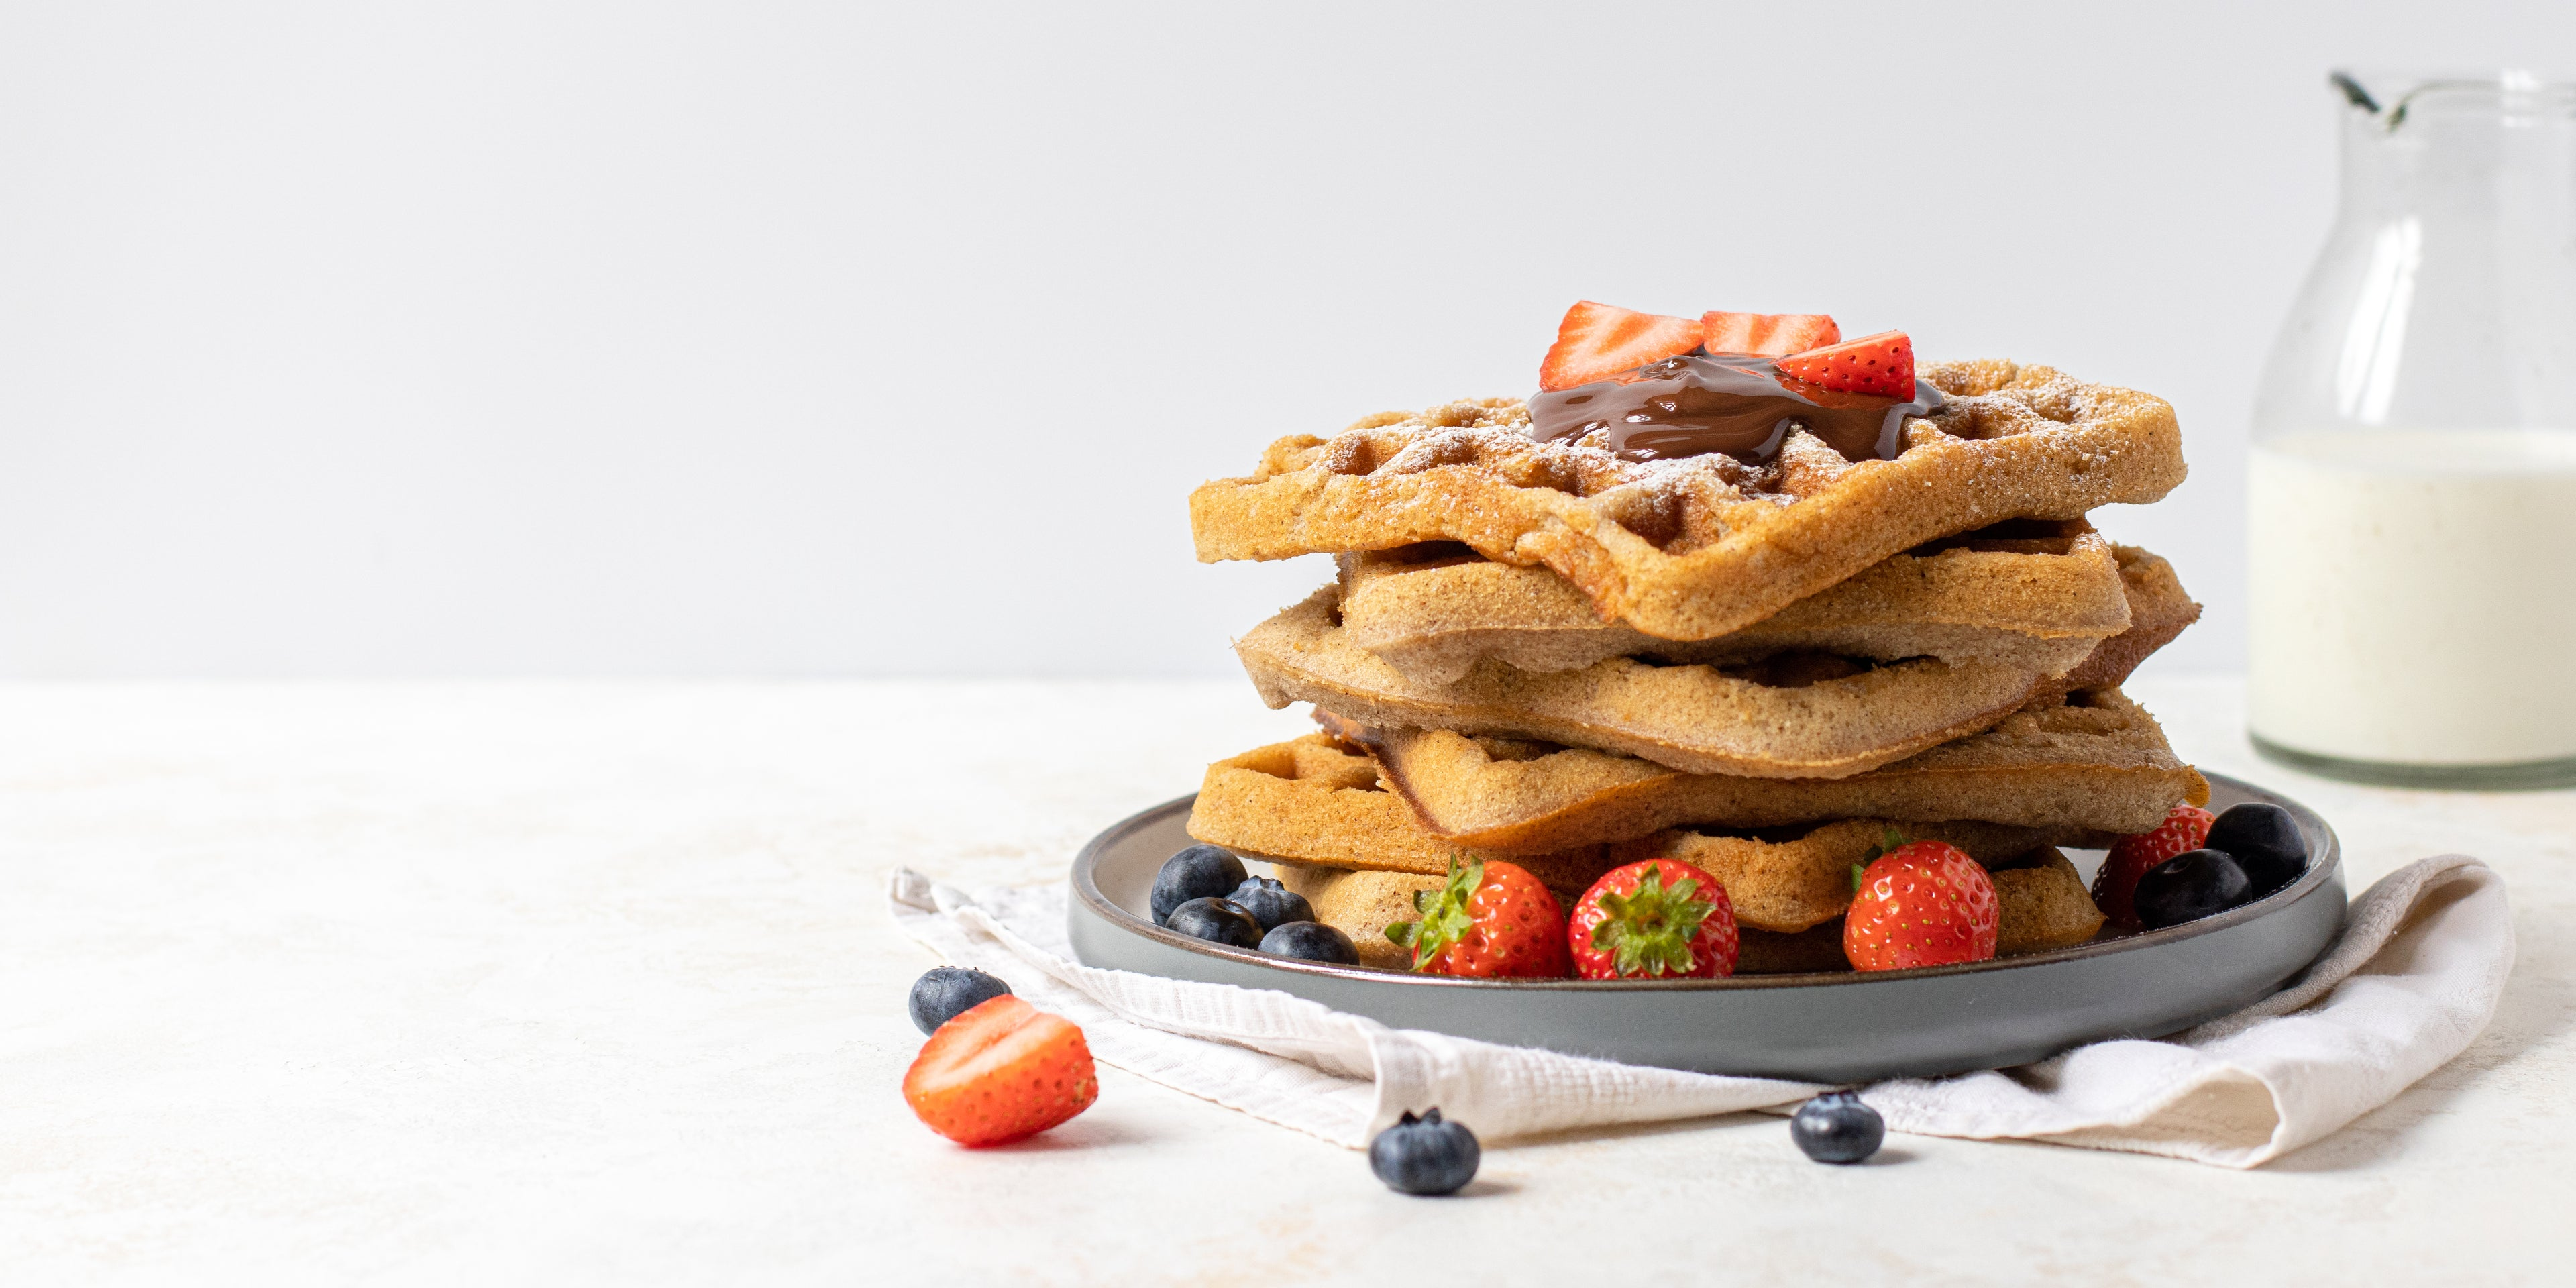 Stack of Waffles topped with berries, chocolate sauce and dusted with icing sugar